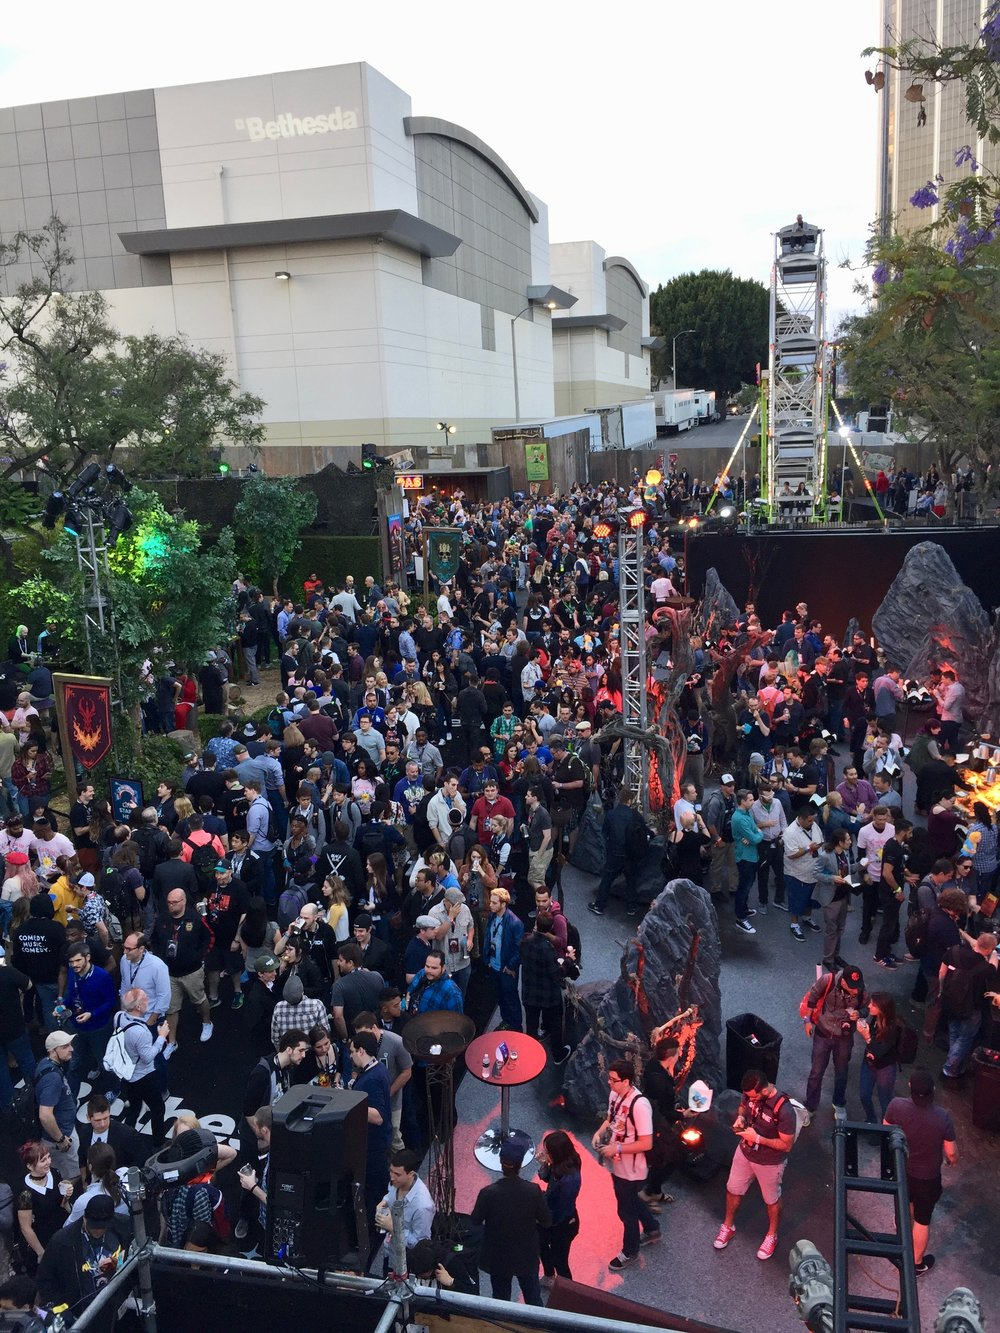 A shot of a launch event we catered for Bethesda where thousands of gamers and fans gathered.